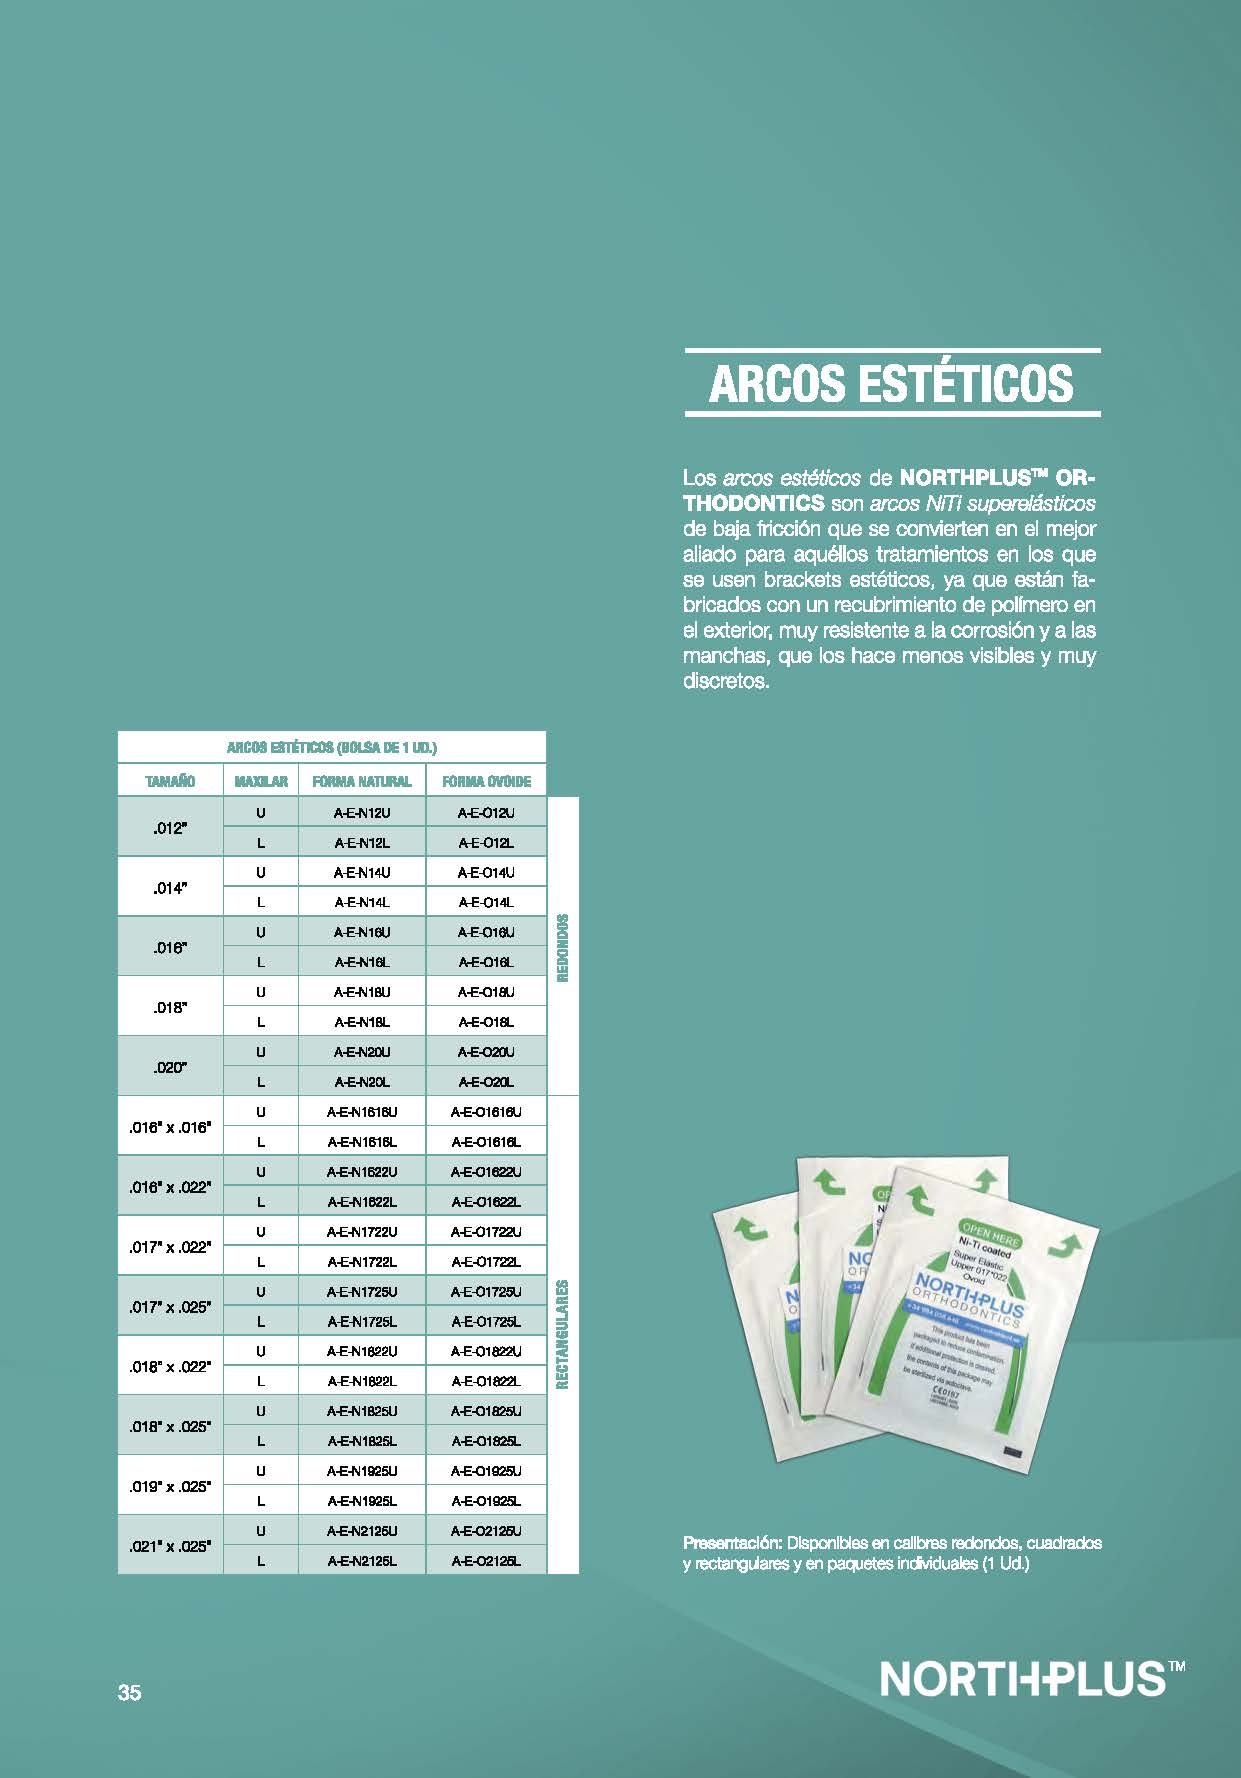 ARCOS ESTÉTICOS NORTHPLUS ORTHODONTICS